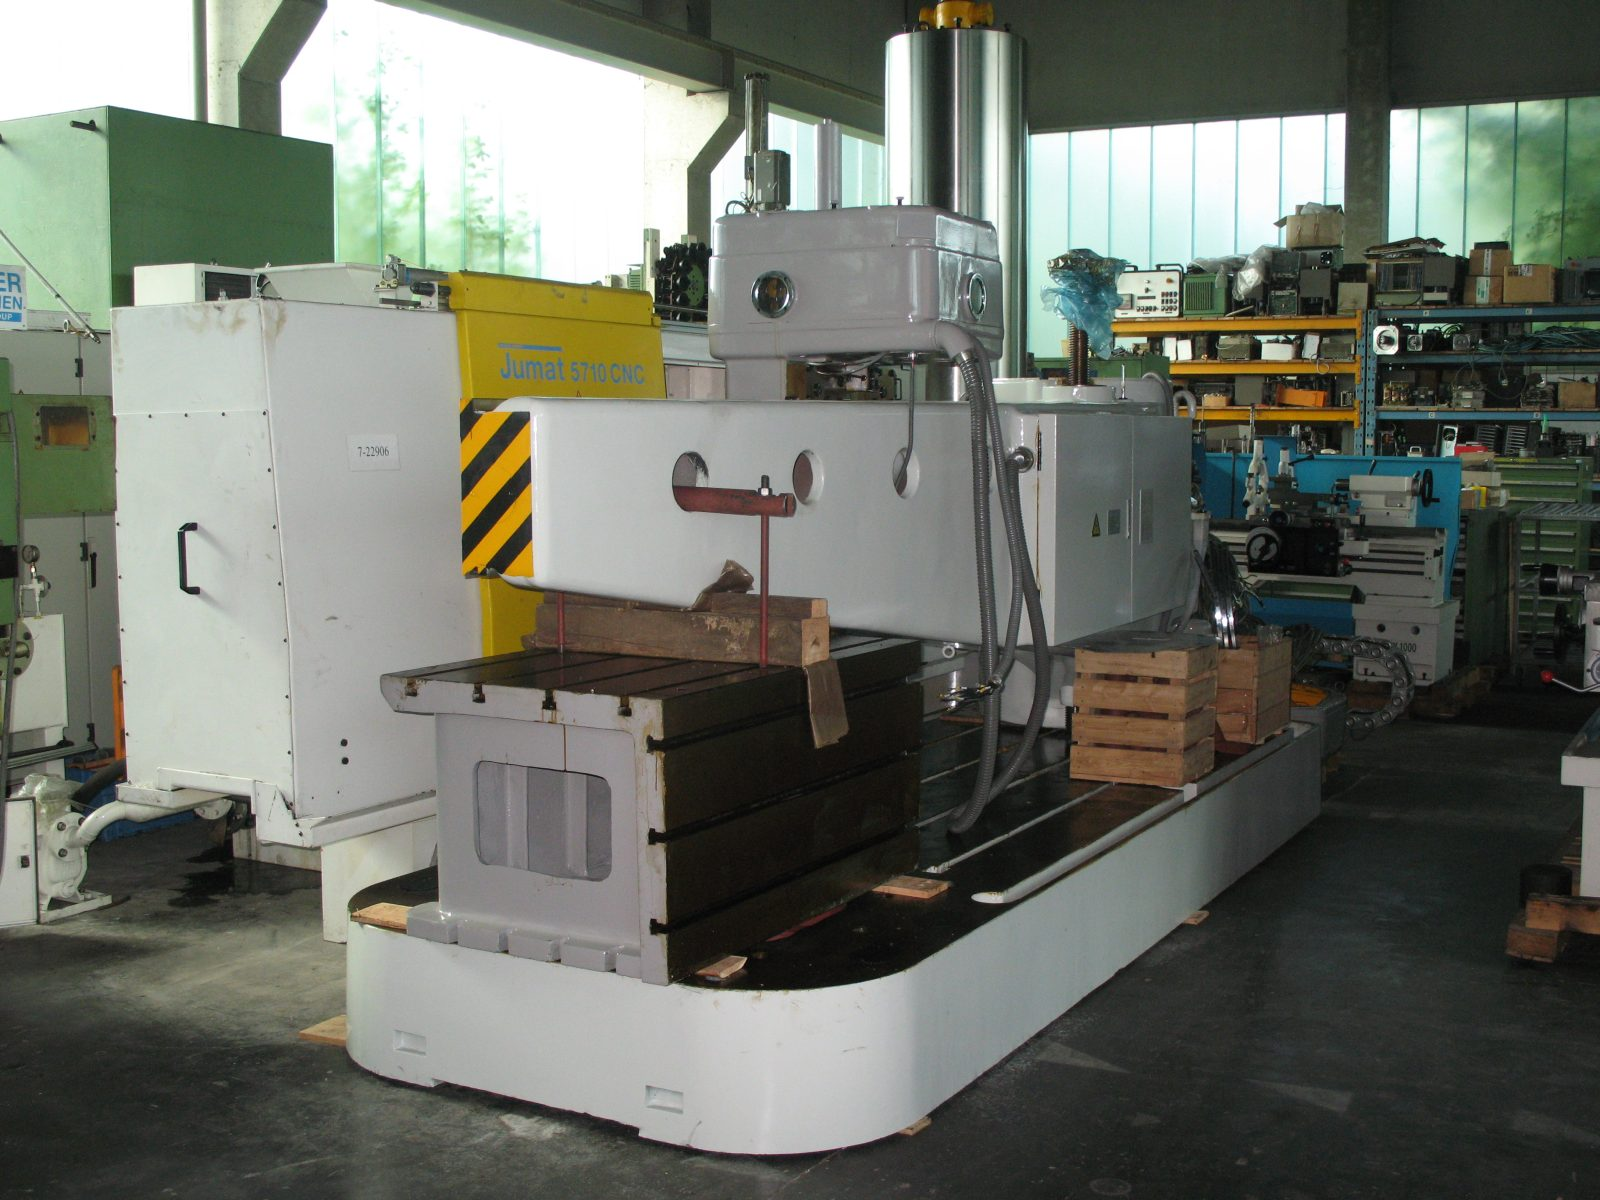 used Boring mills / Machining Centers / Drilling machines Radial Drilling Machine SMTCL Z 30100 x 31